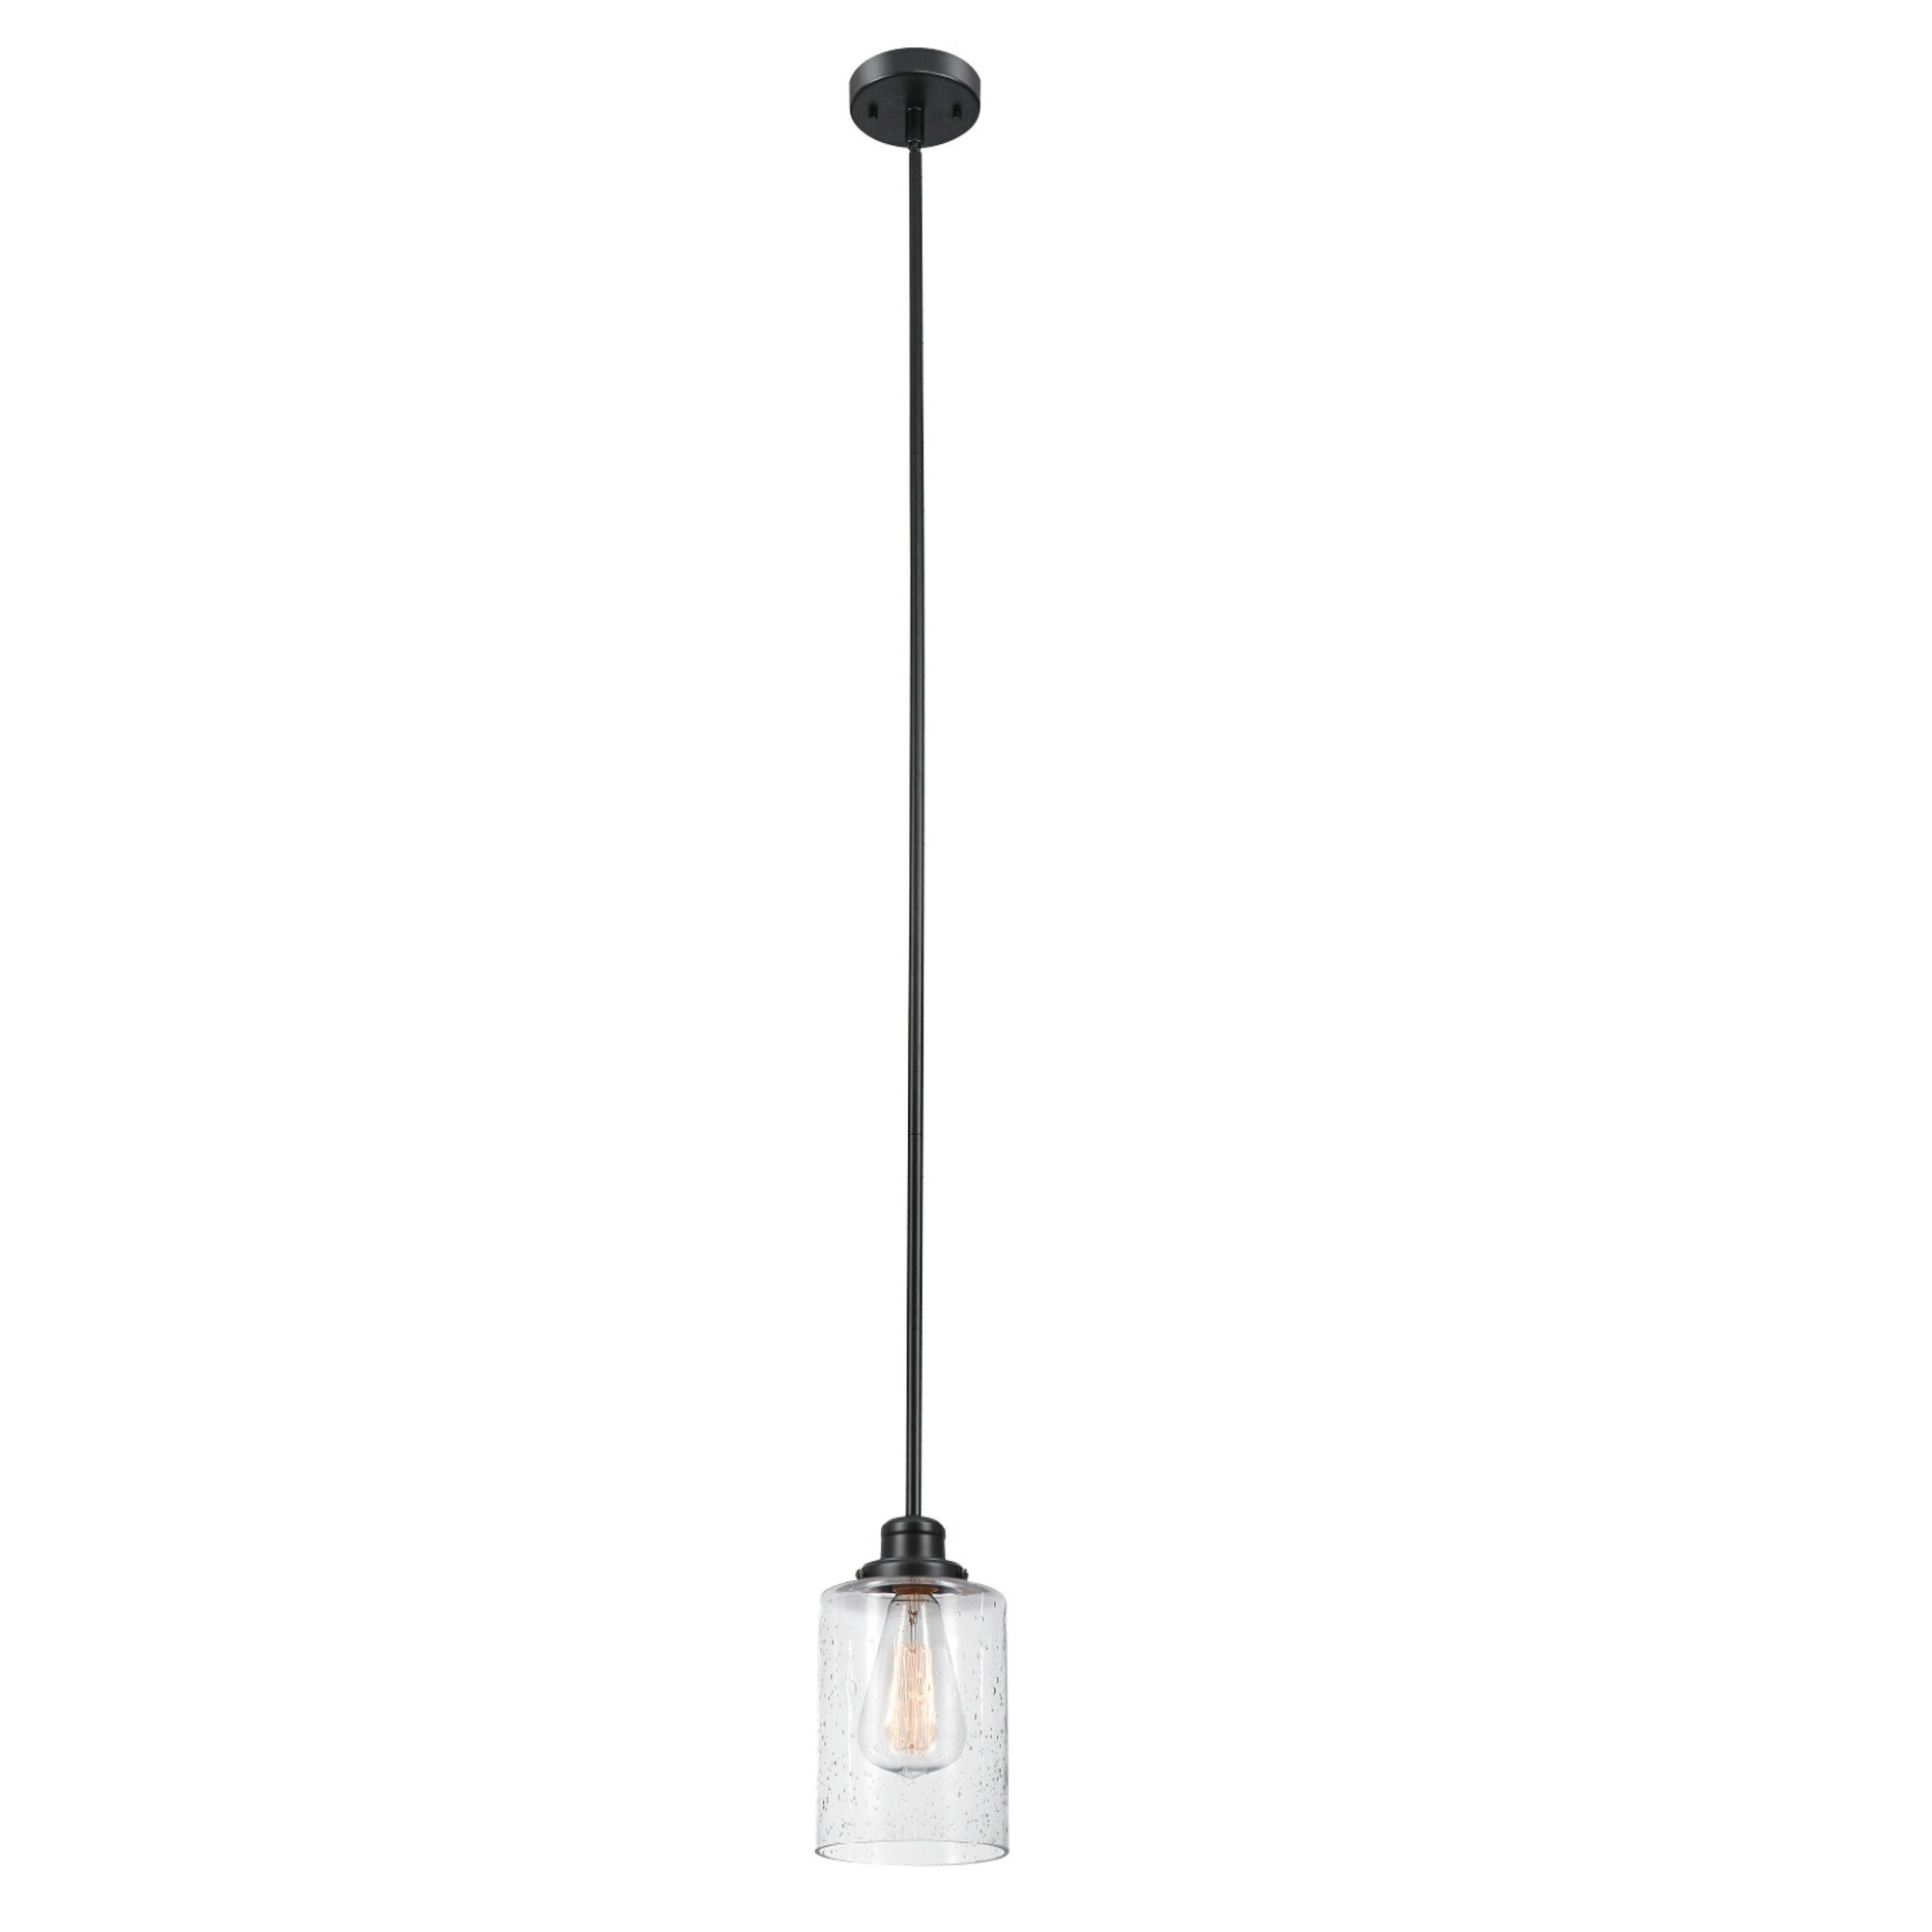 Nolan 1 Light Single Cylinder Pendants Pertaining To Most Up To Date Vivian 1 Light Single Cylinder Pendant (View 13 of 20)